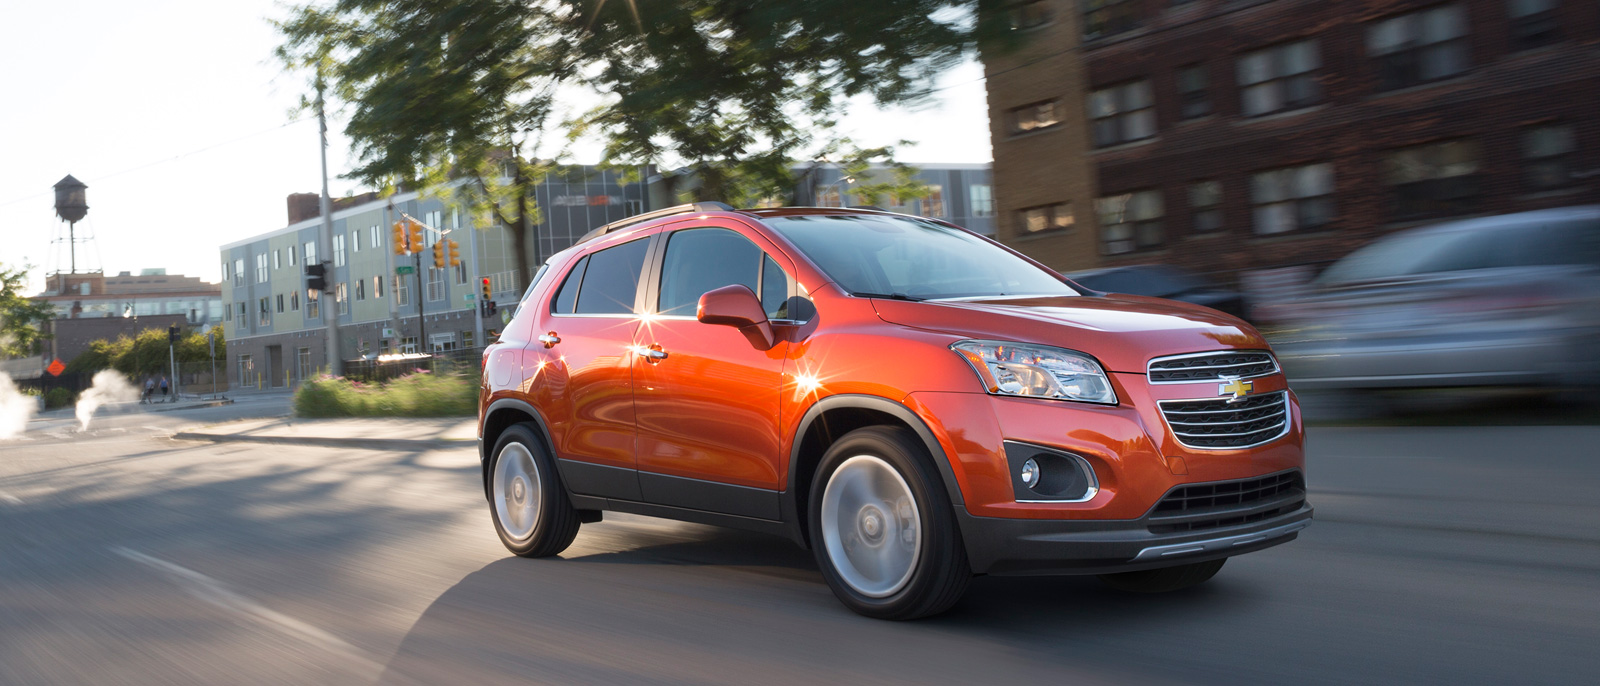 2016 Chevy Trax on road